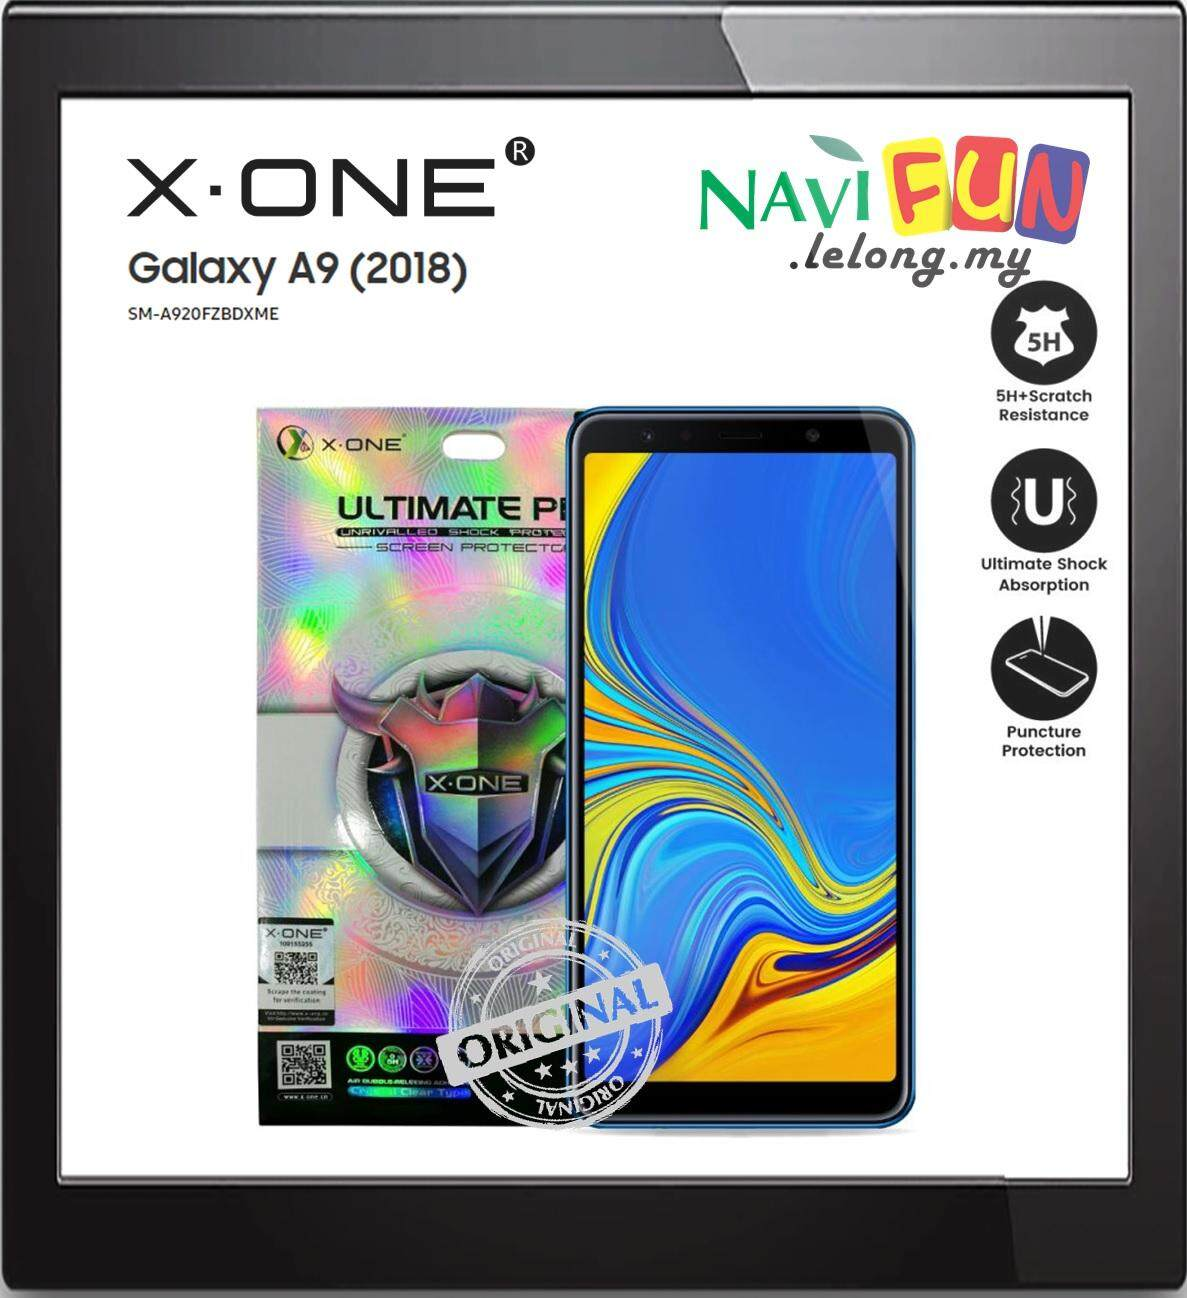 X-One® Ultimate Pro Screen Protector Samsung A9 2018